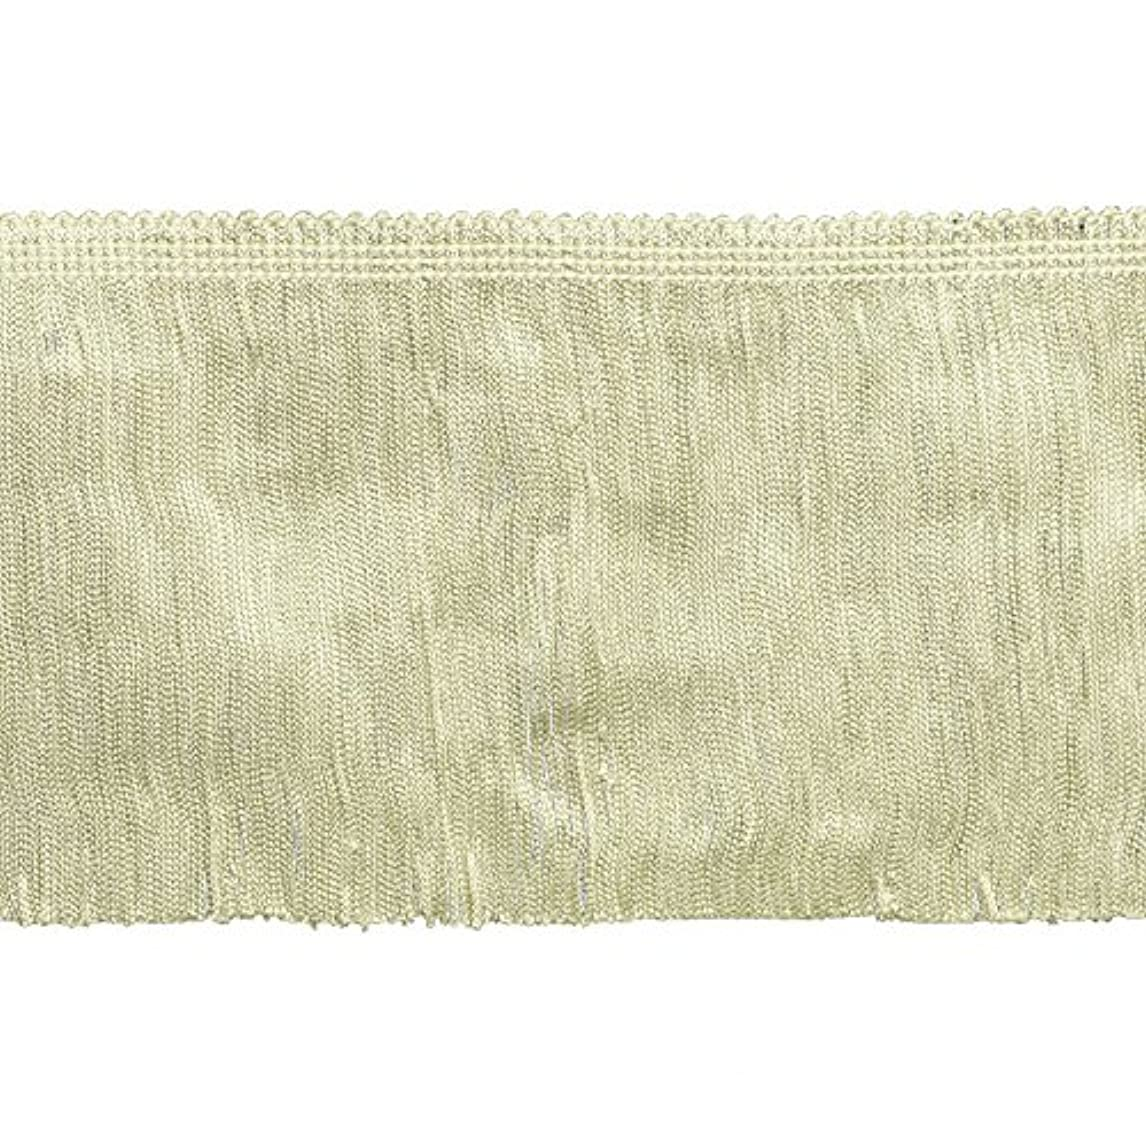 Decorative Trimmings 100% Rayon Chainette Fringe, 6